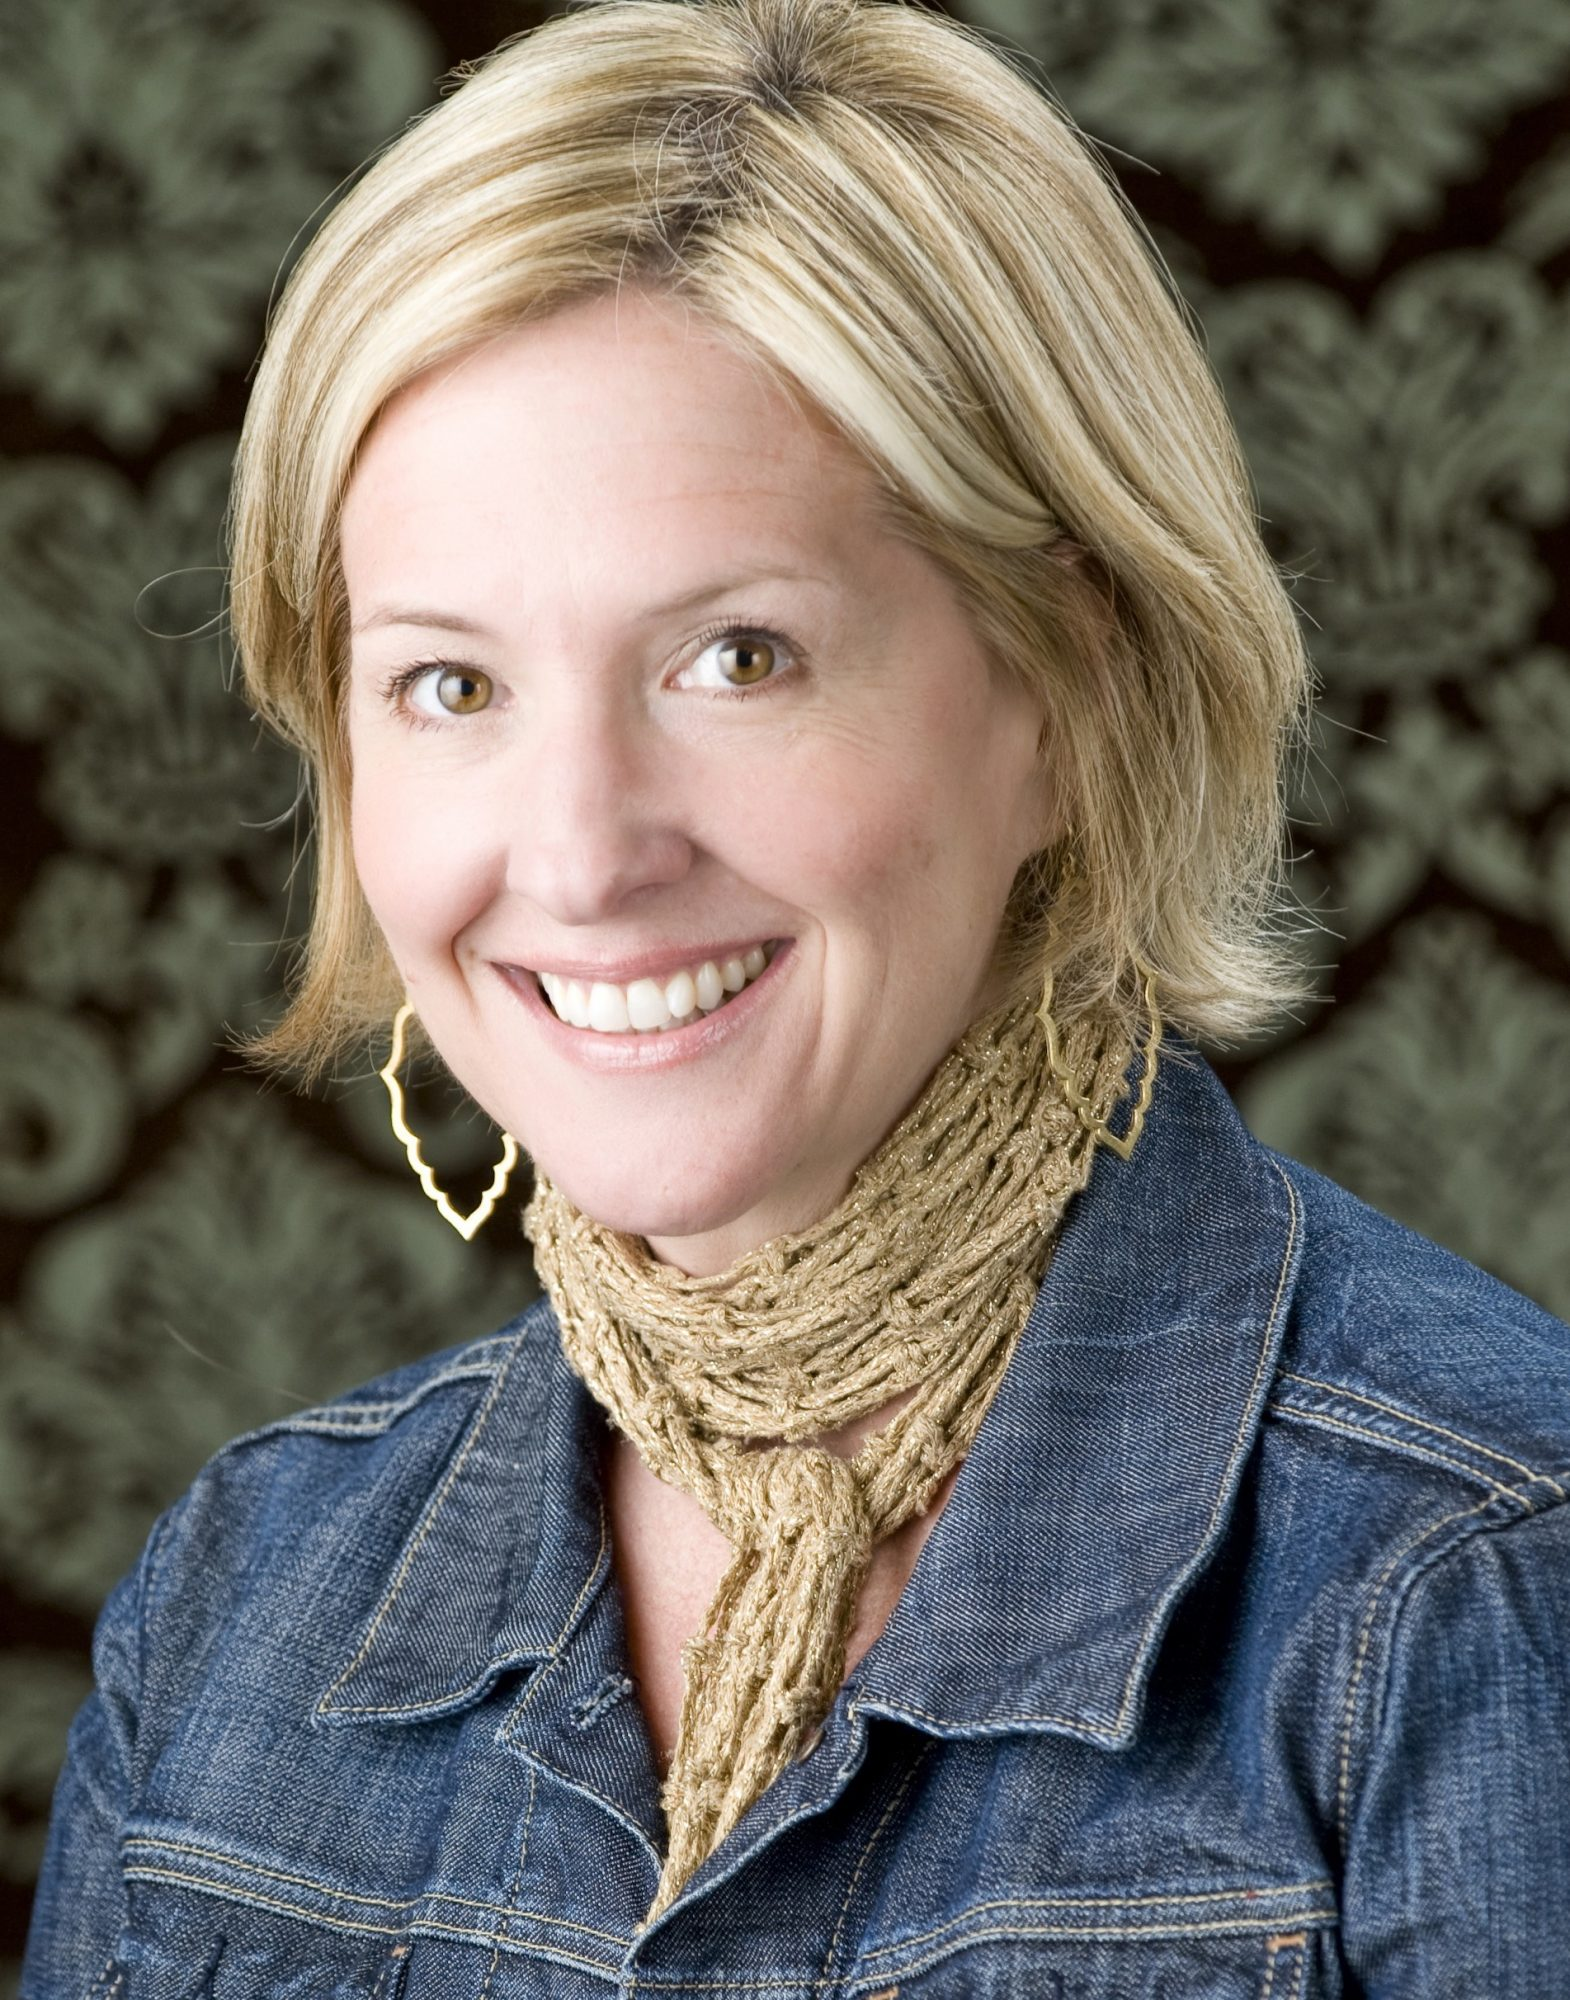 Brene Brown headshot